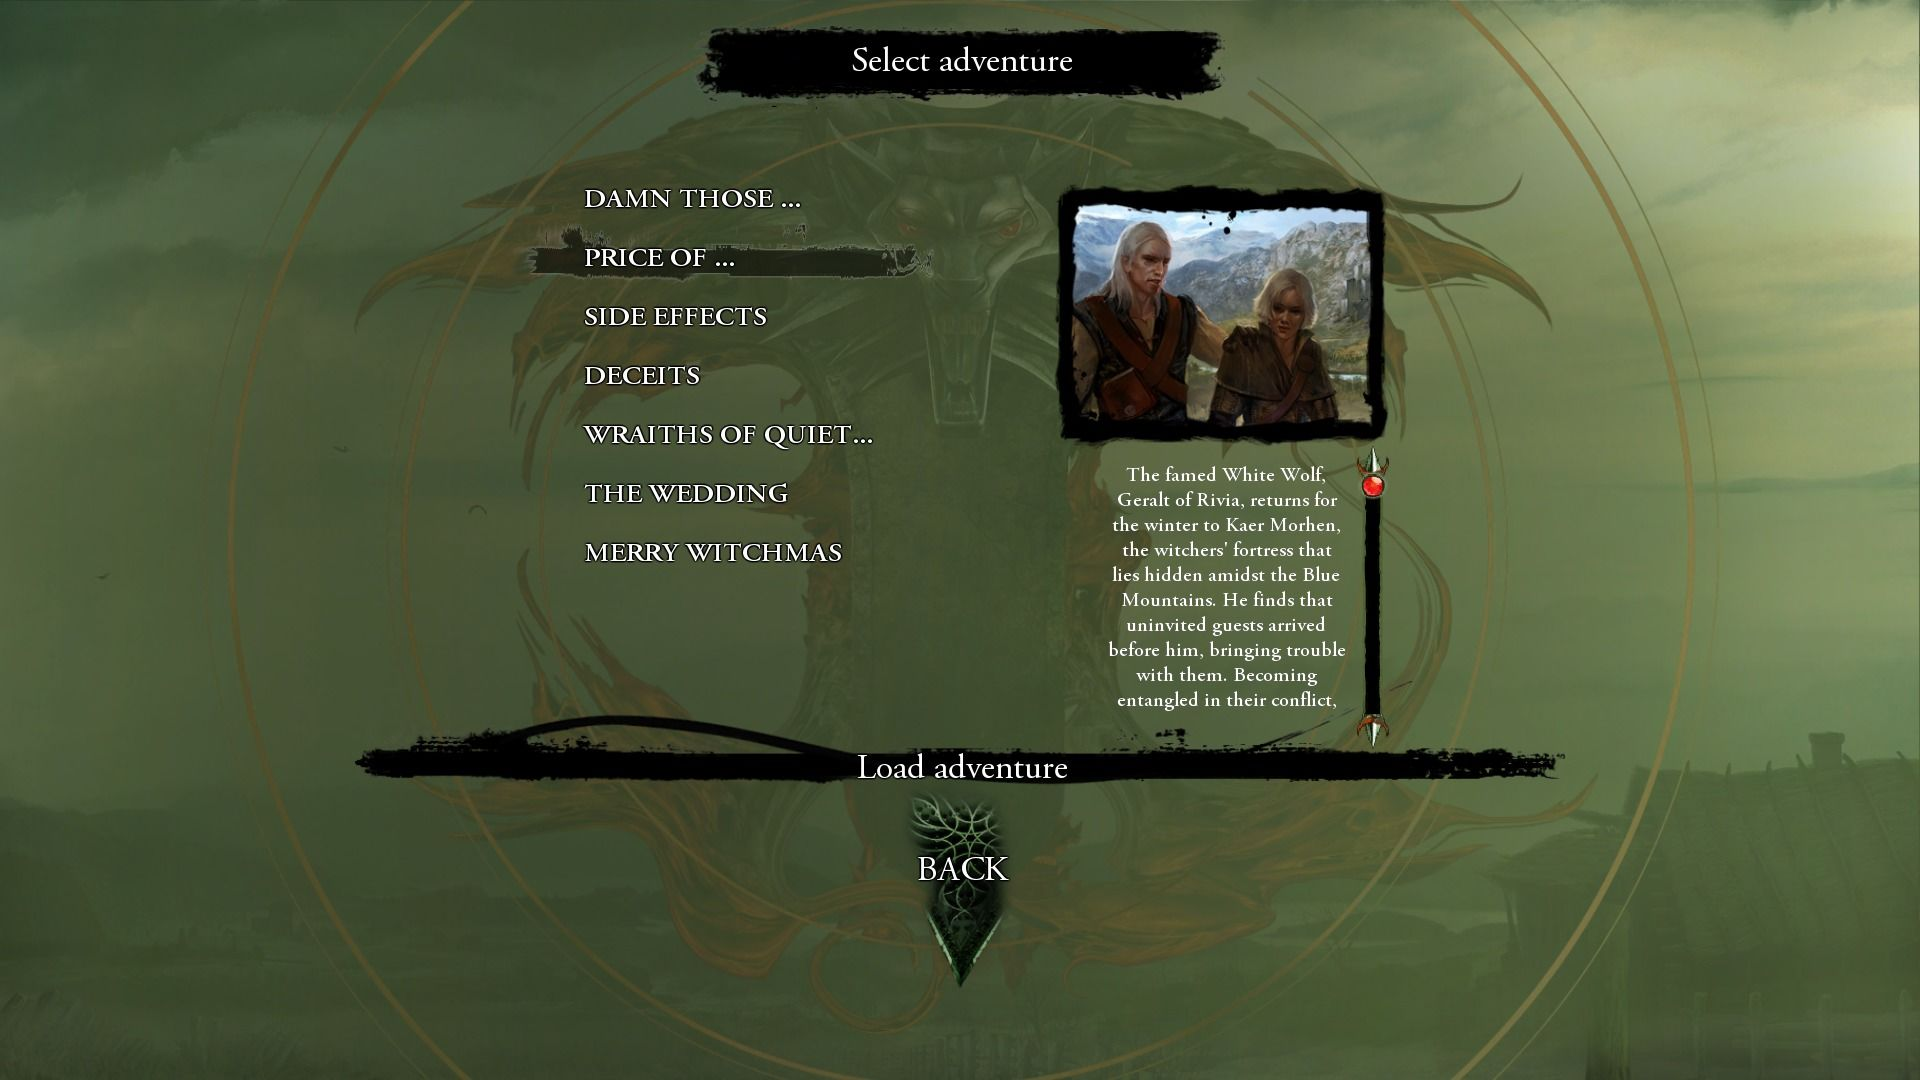 The Witcher: Enhanced Edition Windows Enhanced Edition features two new additional stories, Price of Neutrality and Side Effects, the rest are from v.1.5 patch.